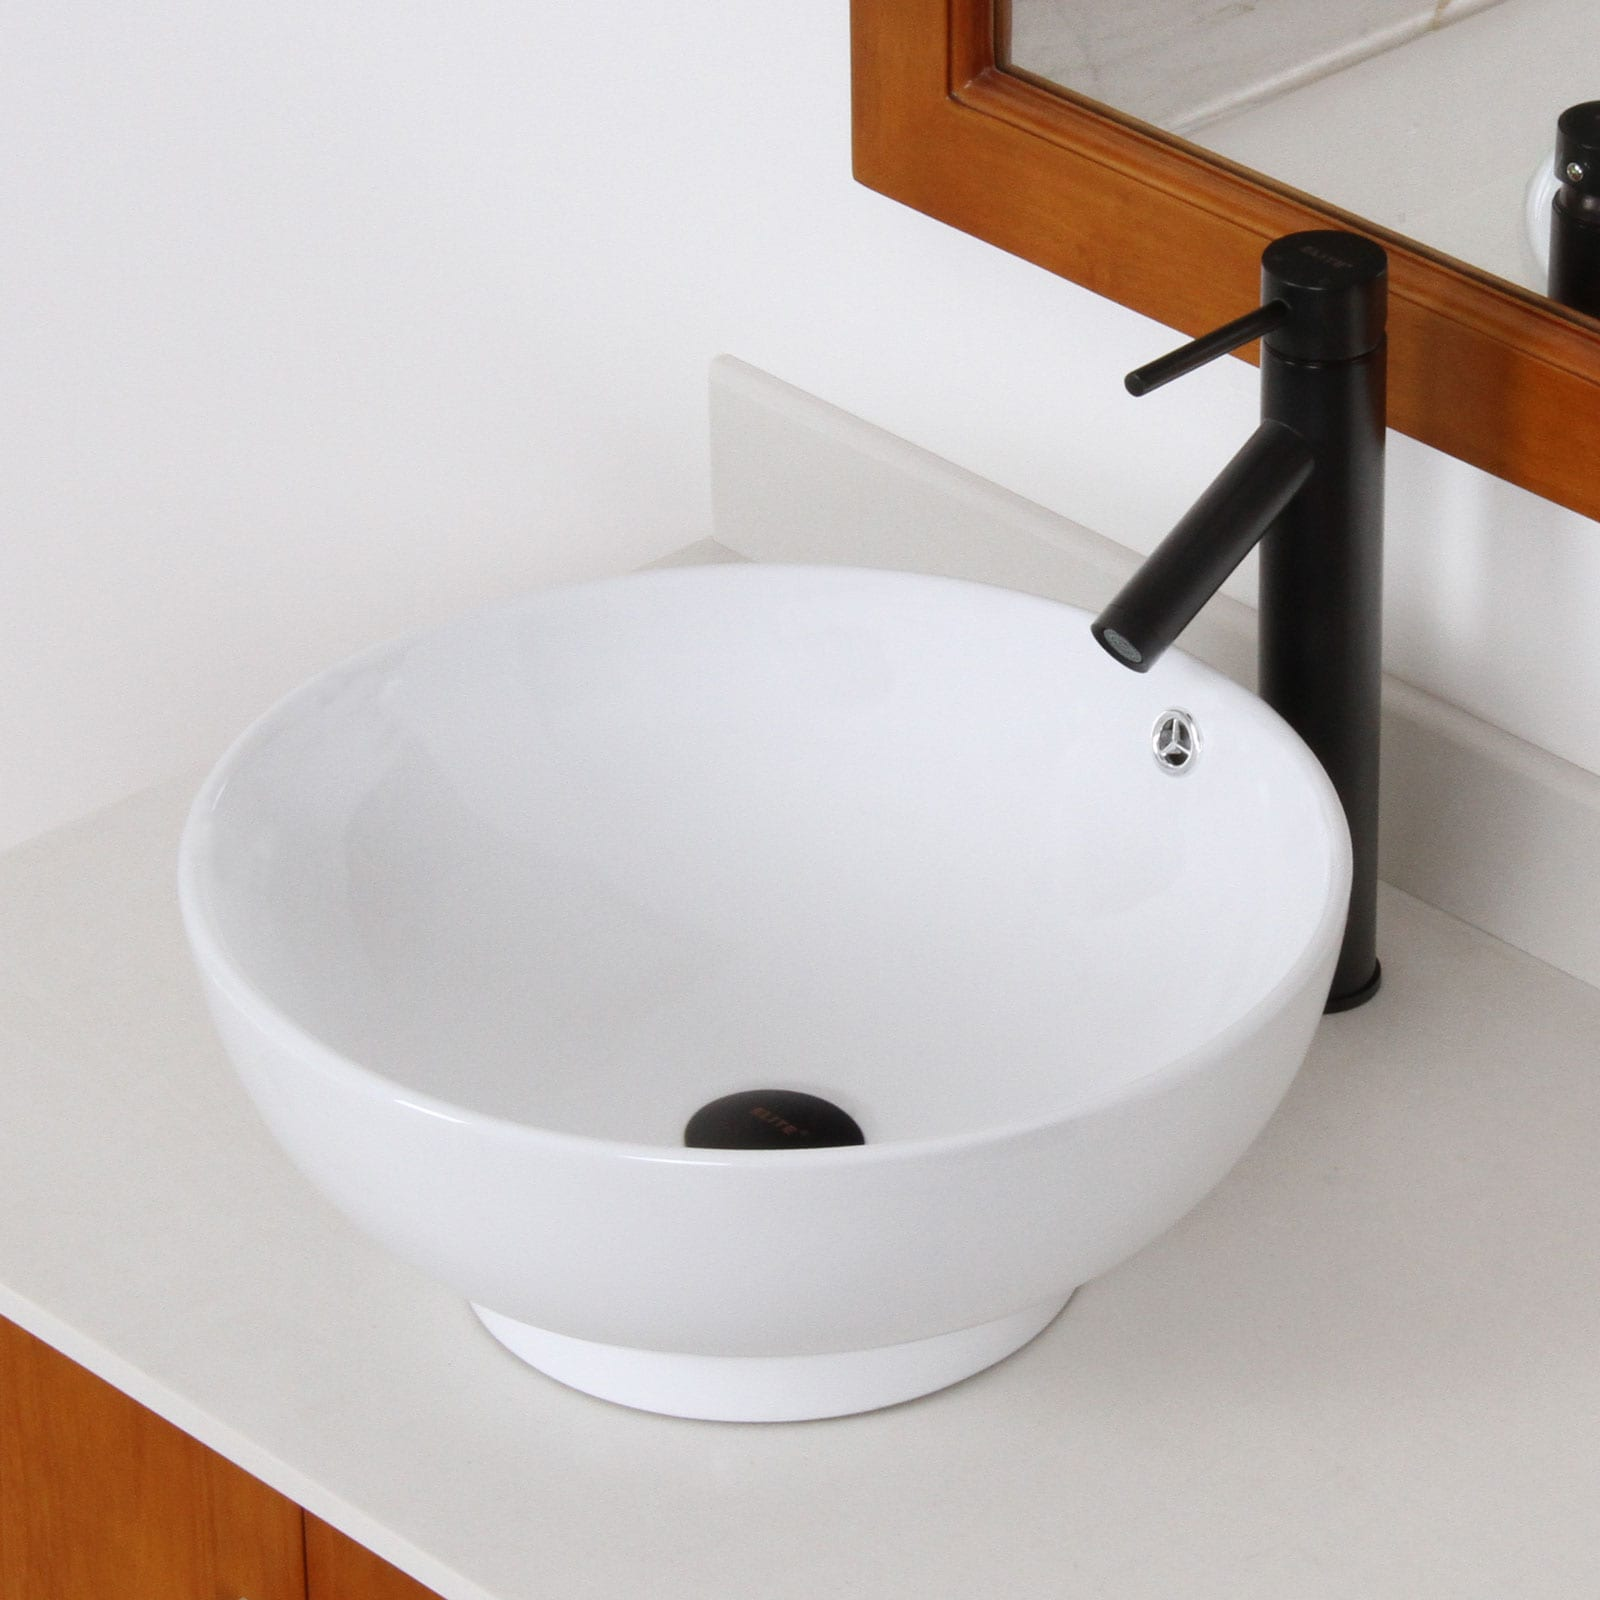 ELITE 98512659ORB High Temperature Grade A Ceramic Bathroom Sink With Round Design and Oil Rubbed Bronze Finish Faucet Combo